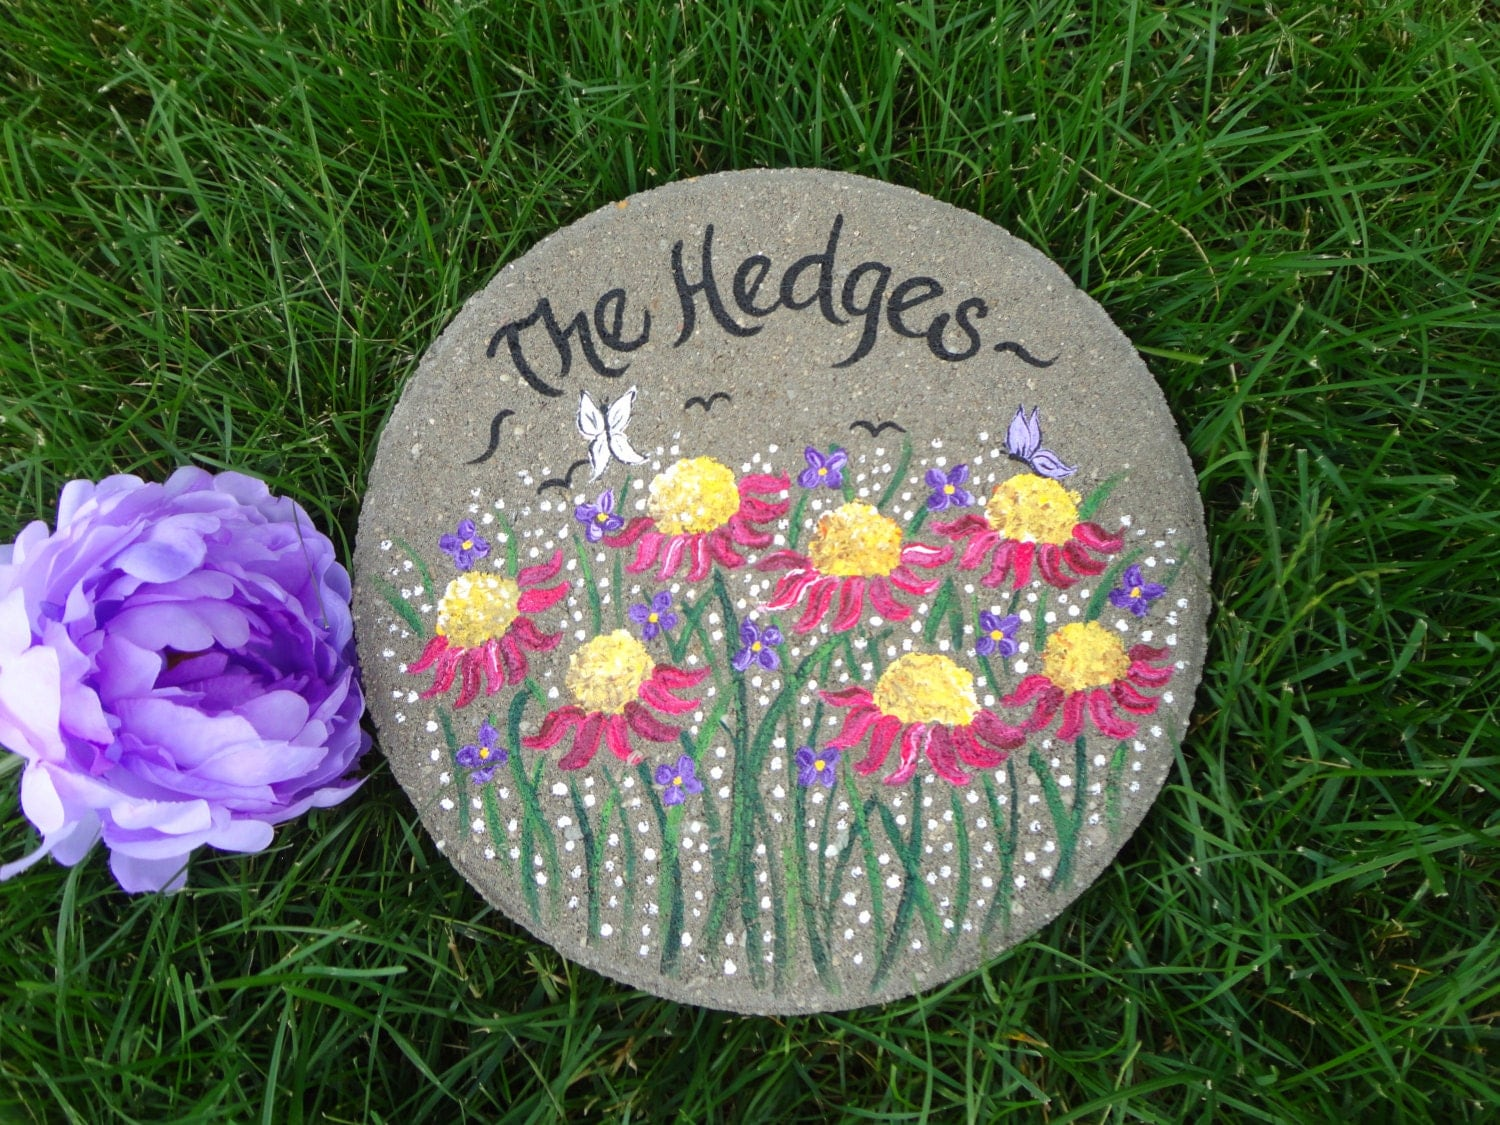 Wedding gift bride and groom gift personalized garden stone - Personalized garden stepping stones ...